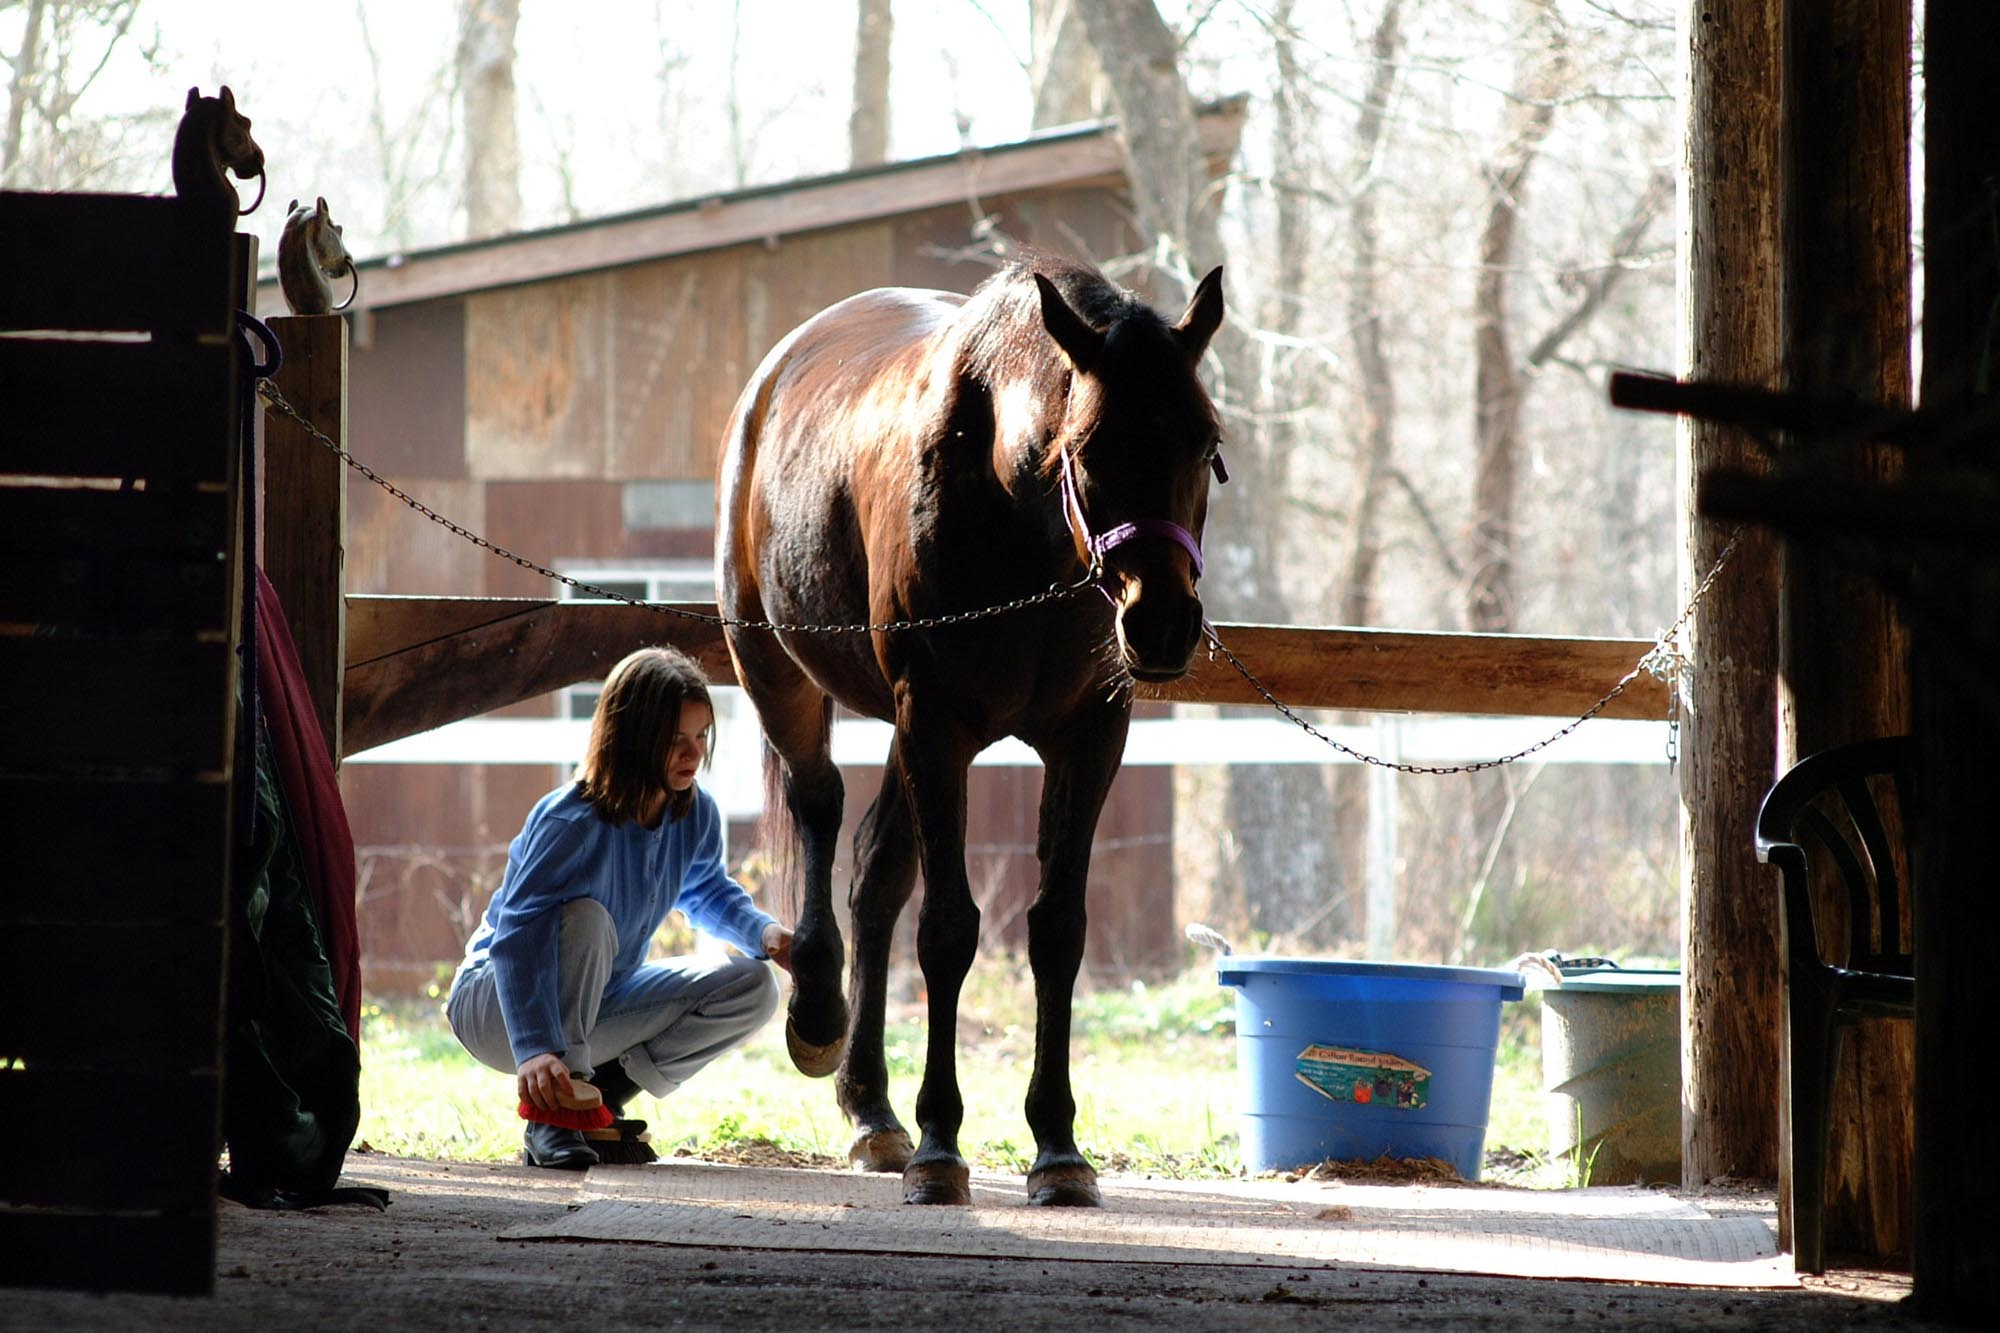 Horse Expert Lists Benefits of Horse Ownership